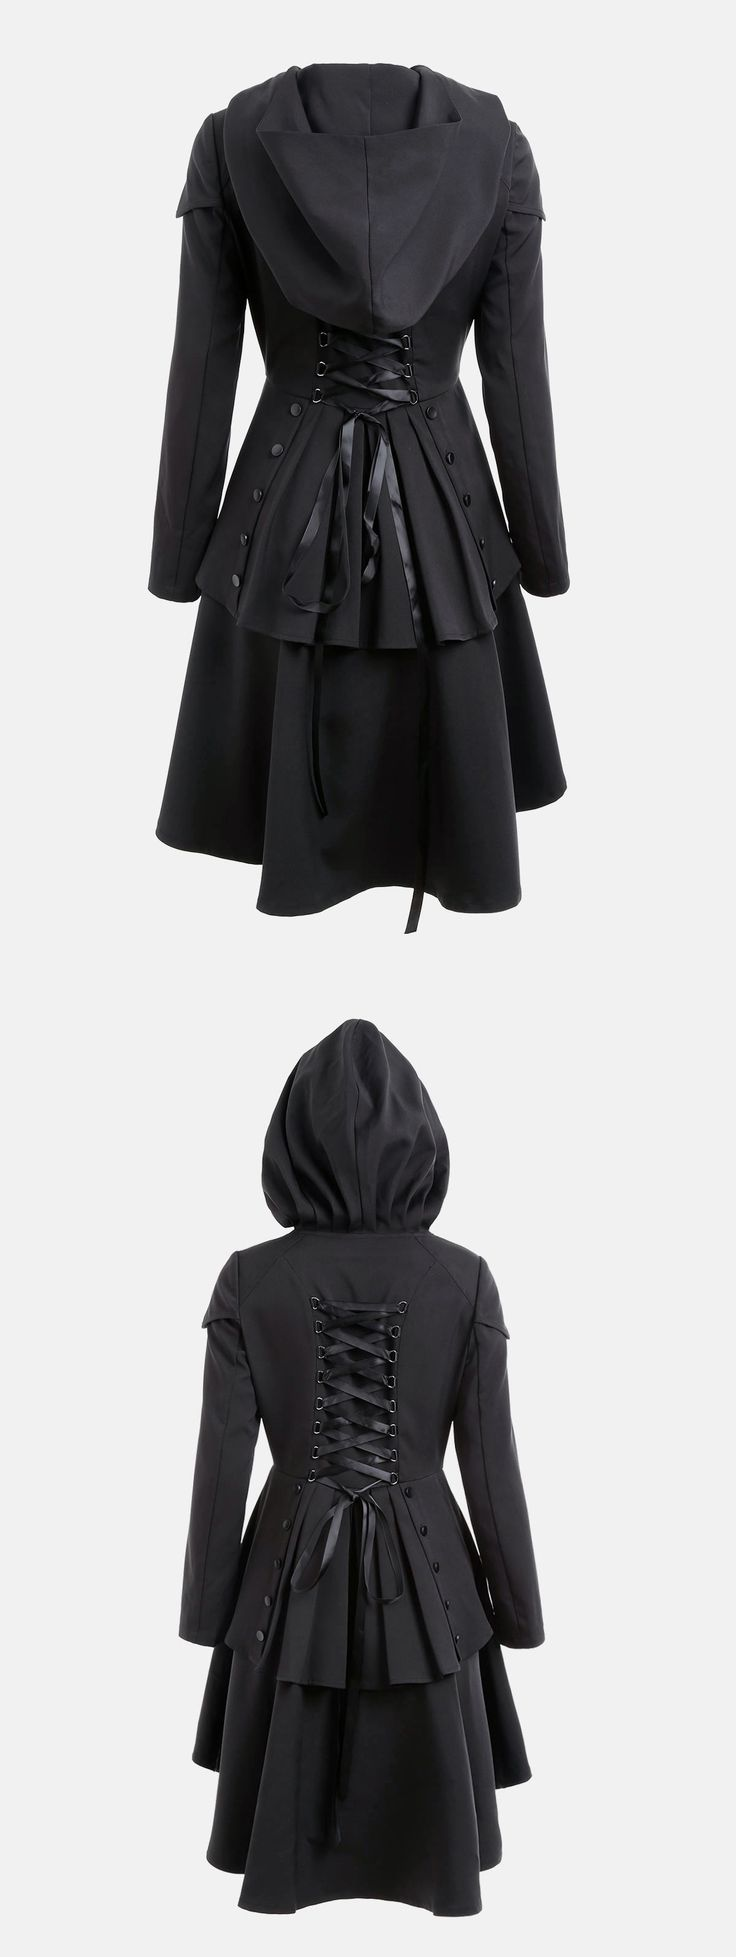 Happy Halloween Costume | $23.49 | Layered Lace Up High Low Hooded Coat | Sammydress.com